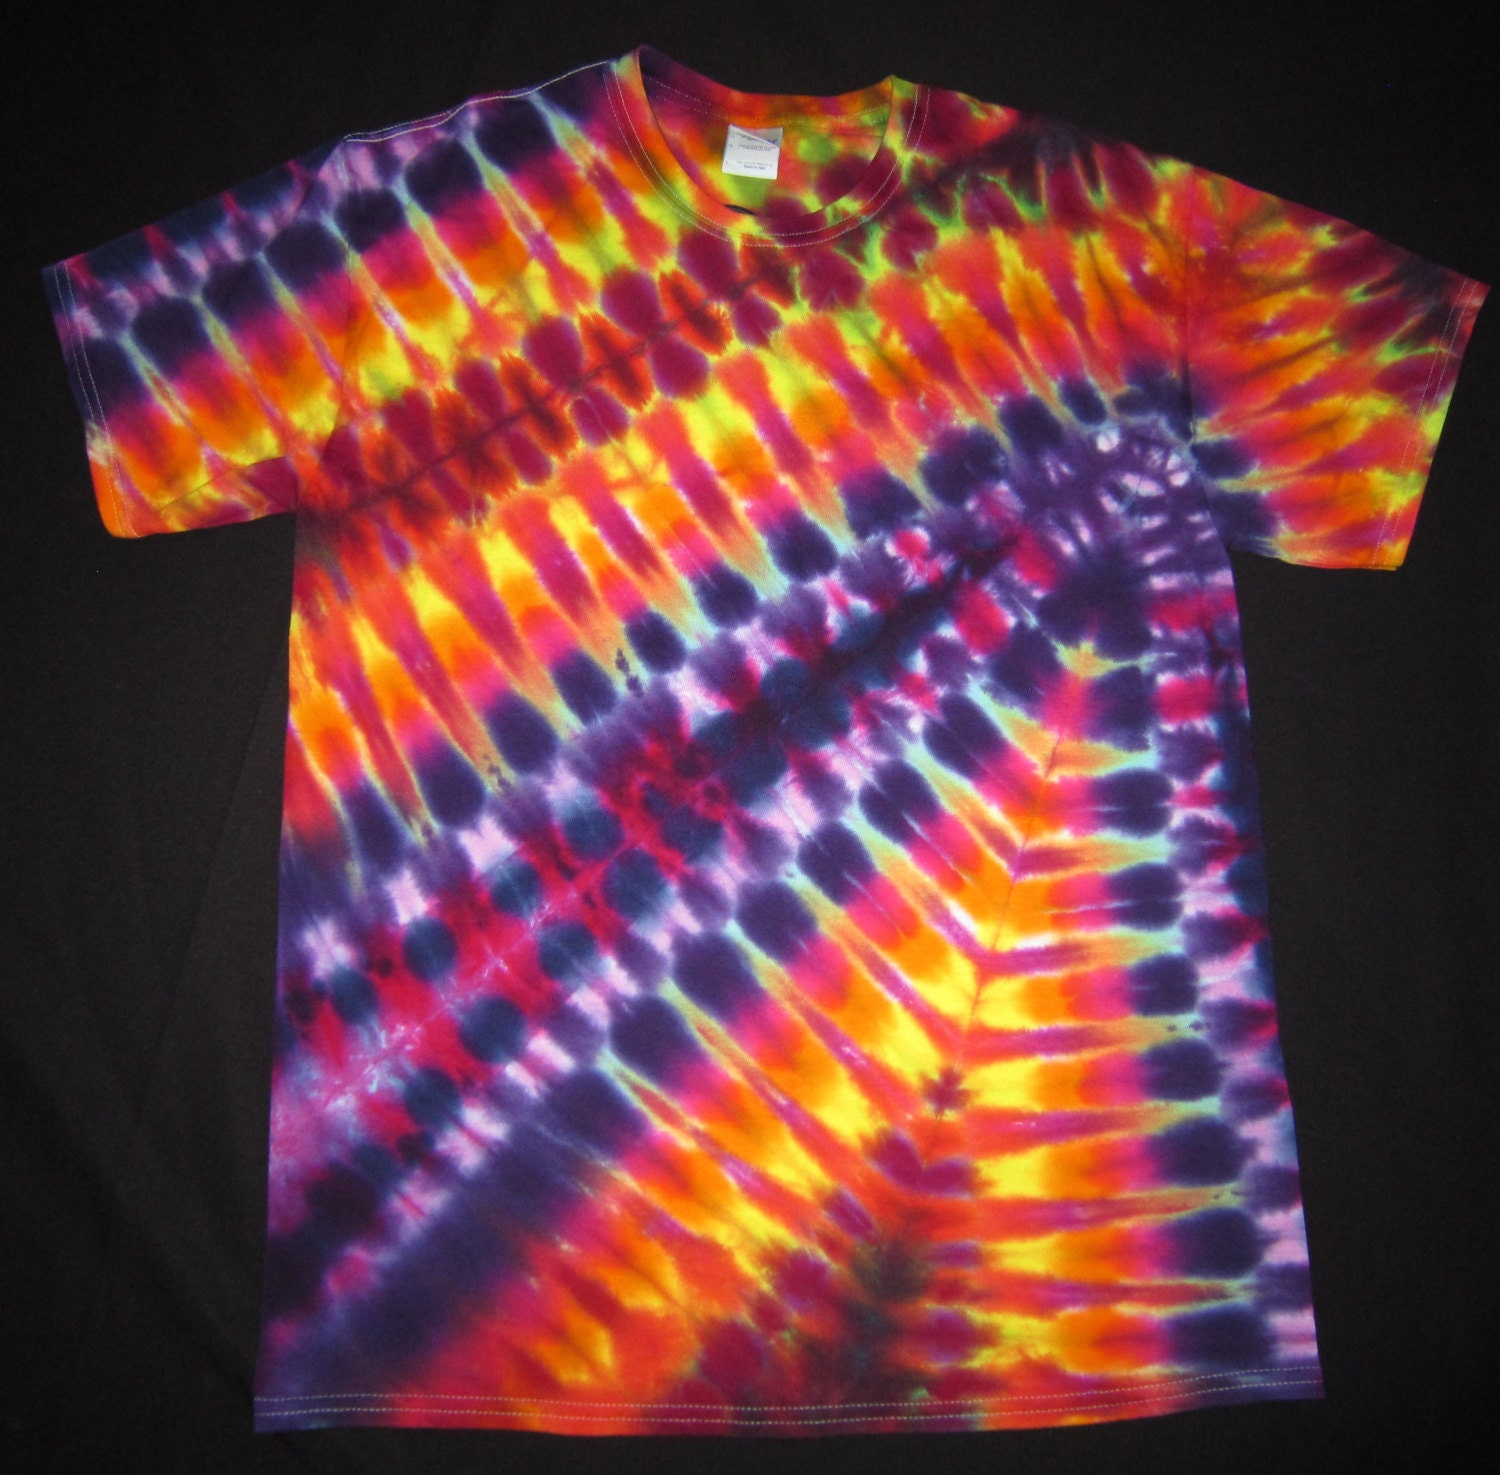 Psychedelic random pattern tie dye t shirt fit men 39 s size for Tie dye t shirt patterns